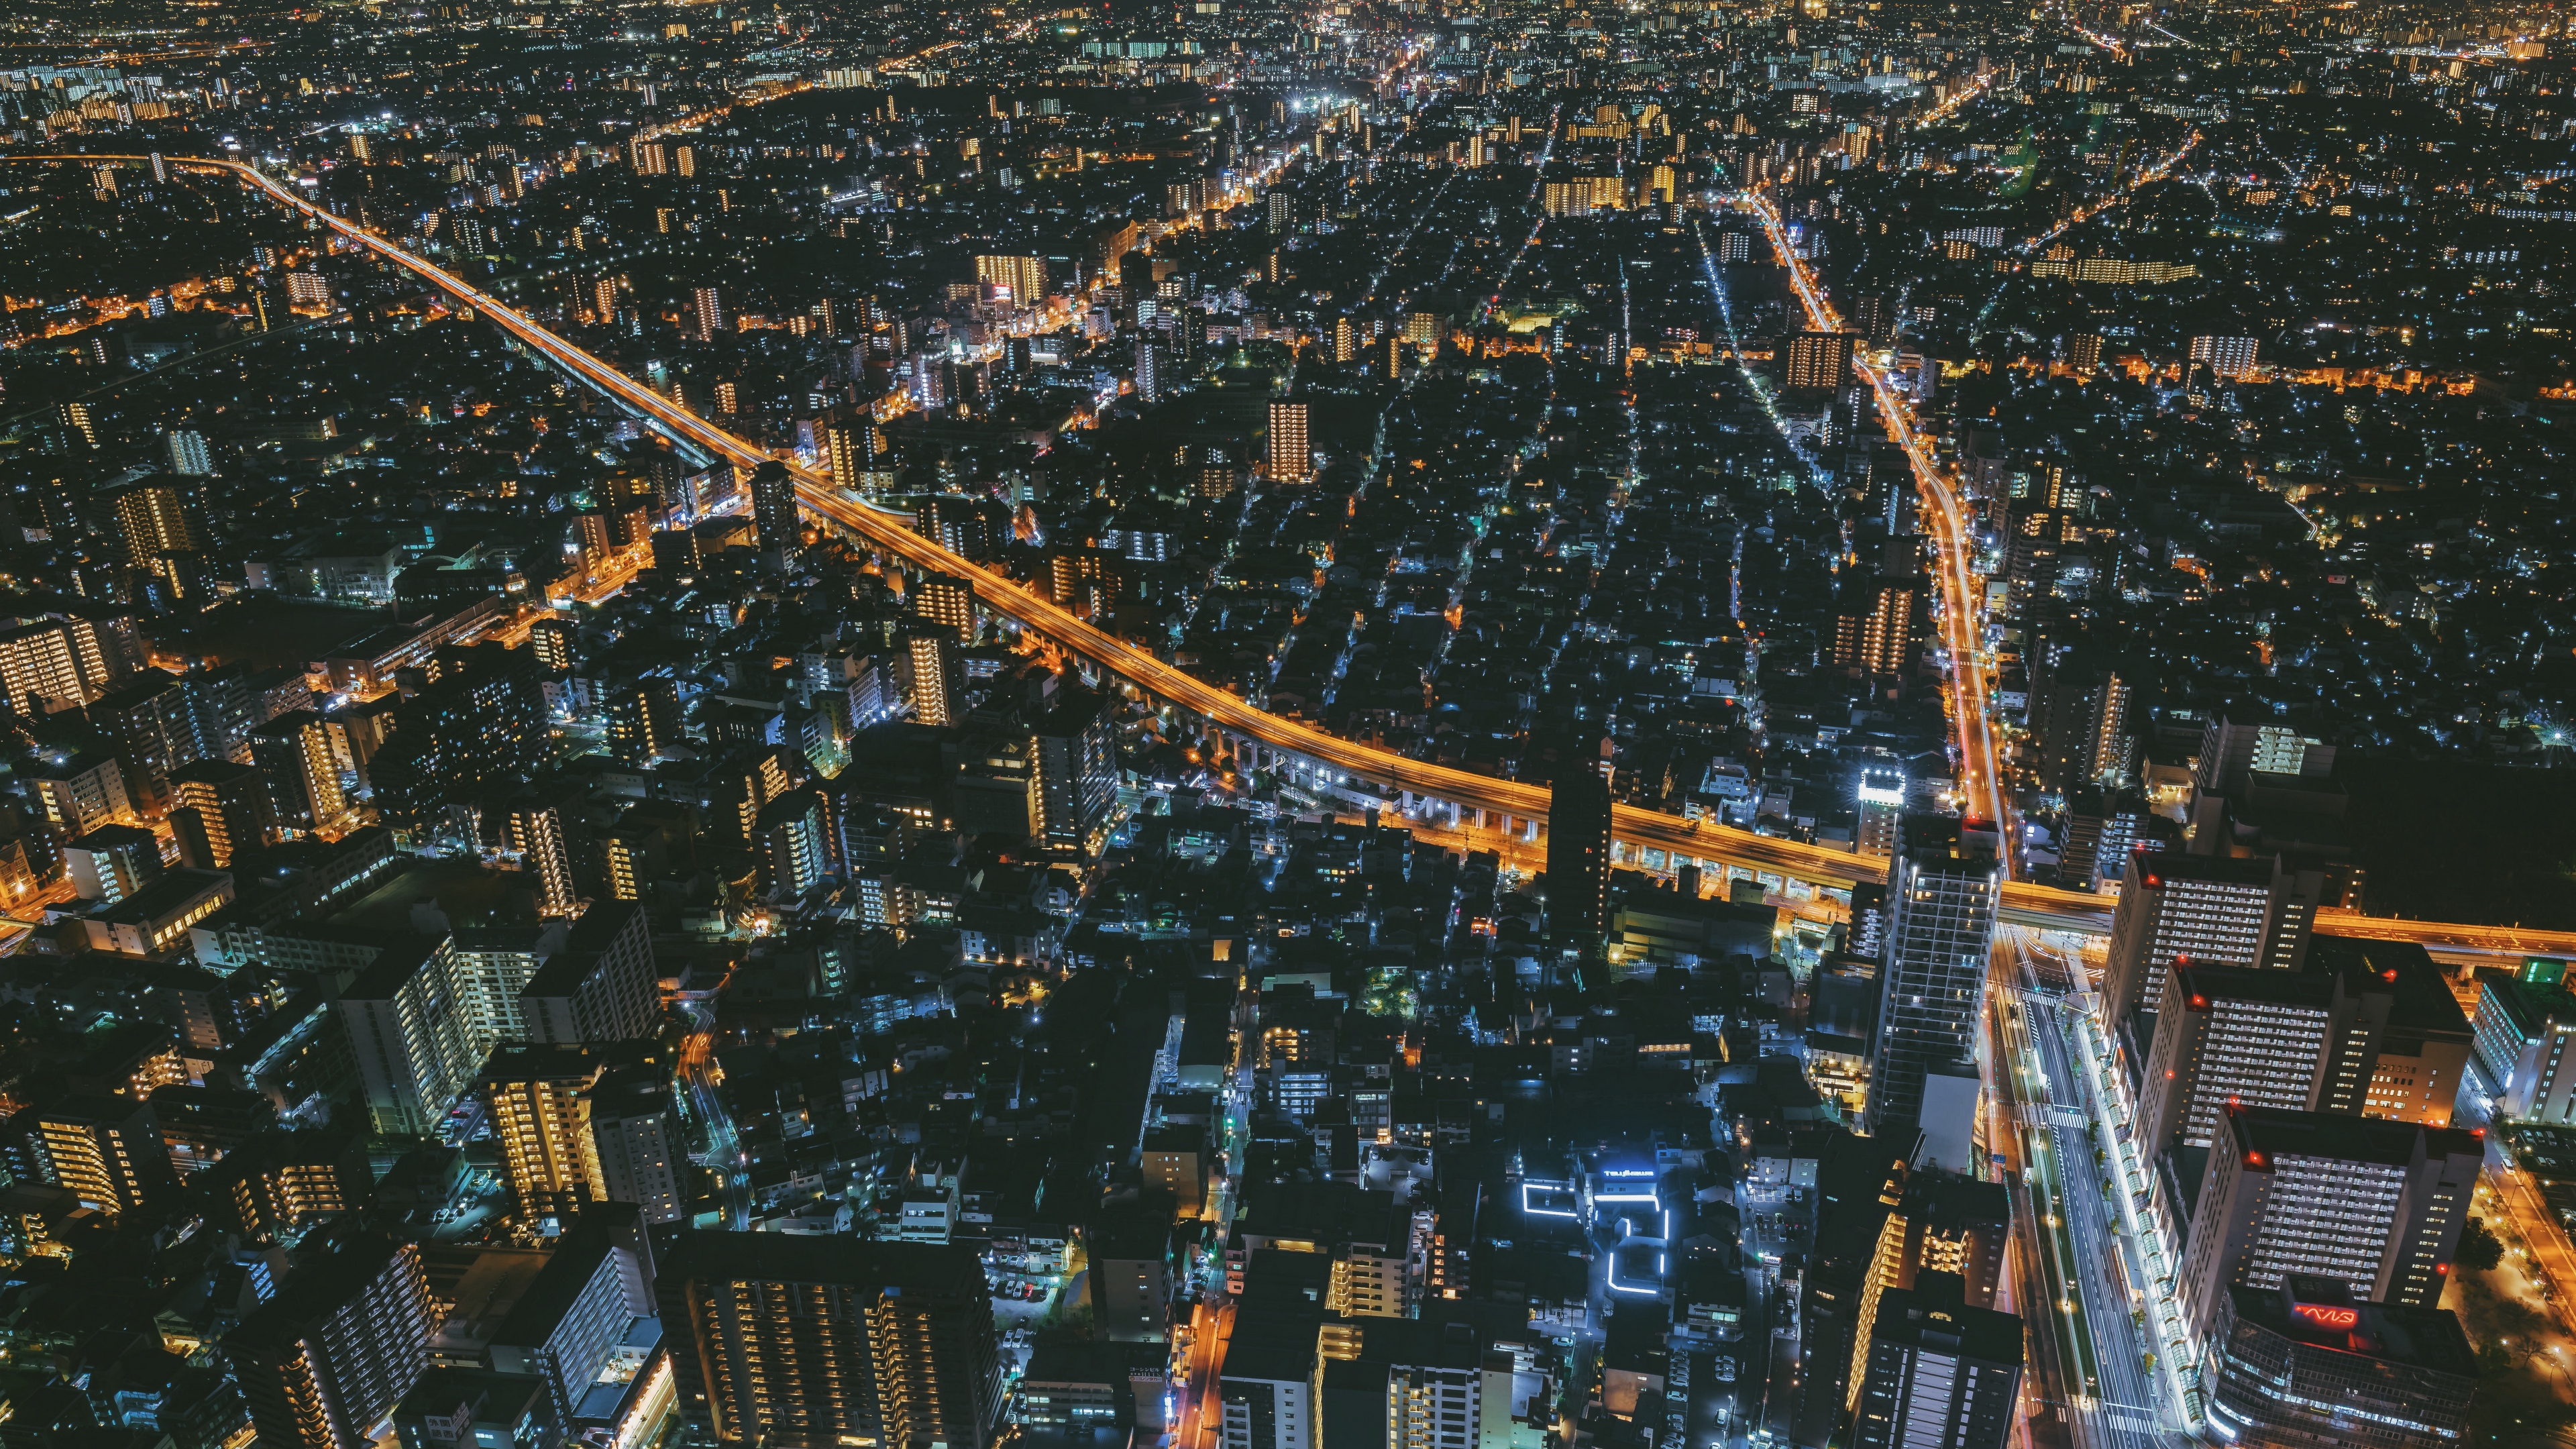 night city top view city lights osaka japan 4k 1538066220 - night city, top view, city lights, osaka, japan 4k - top view, night city, city lights